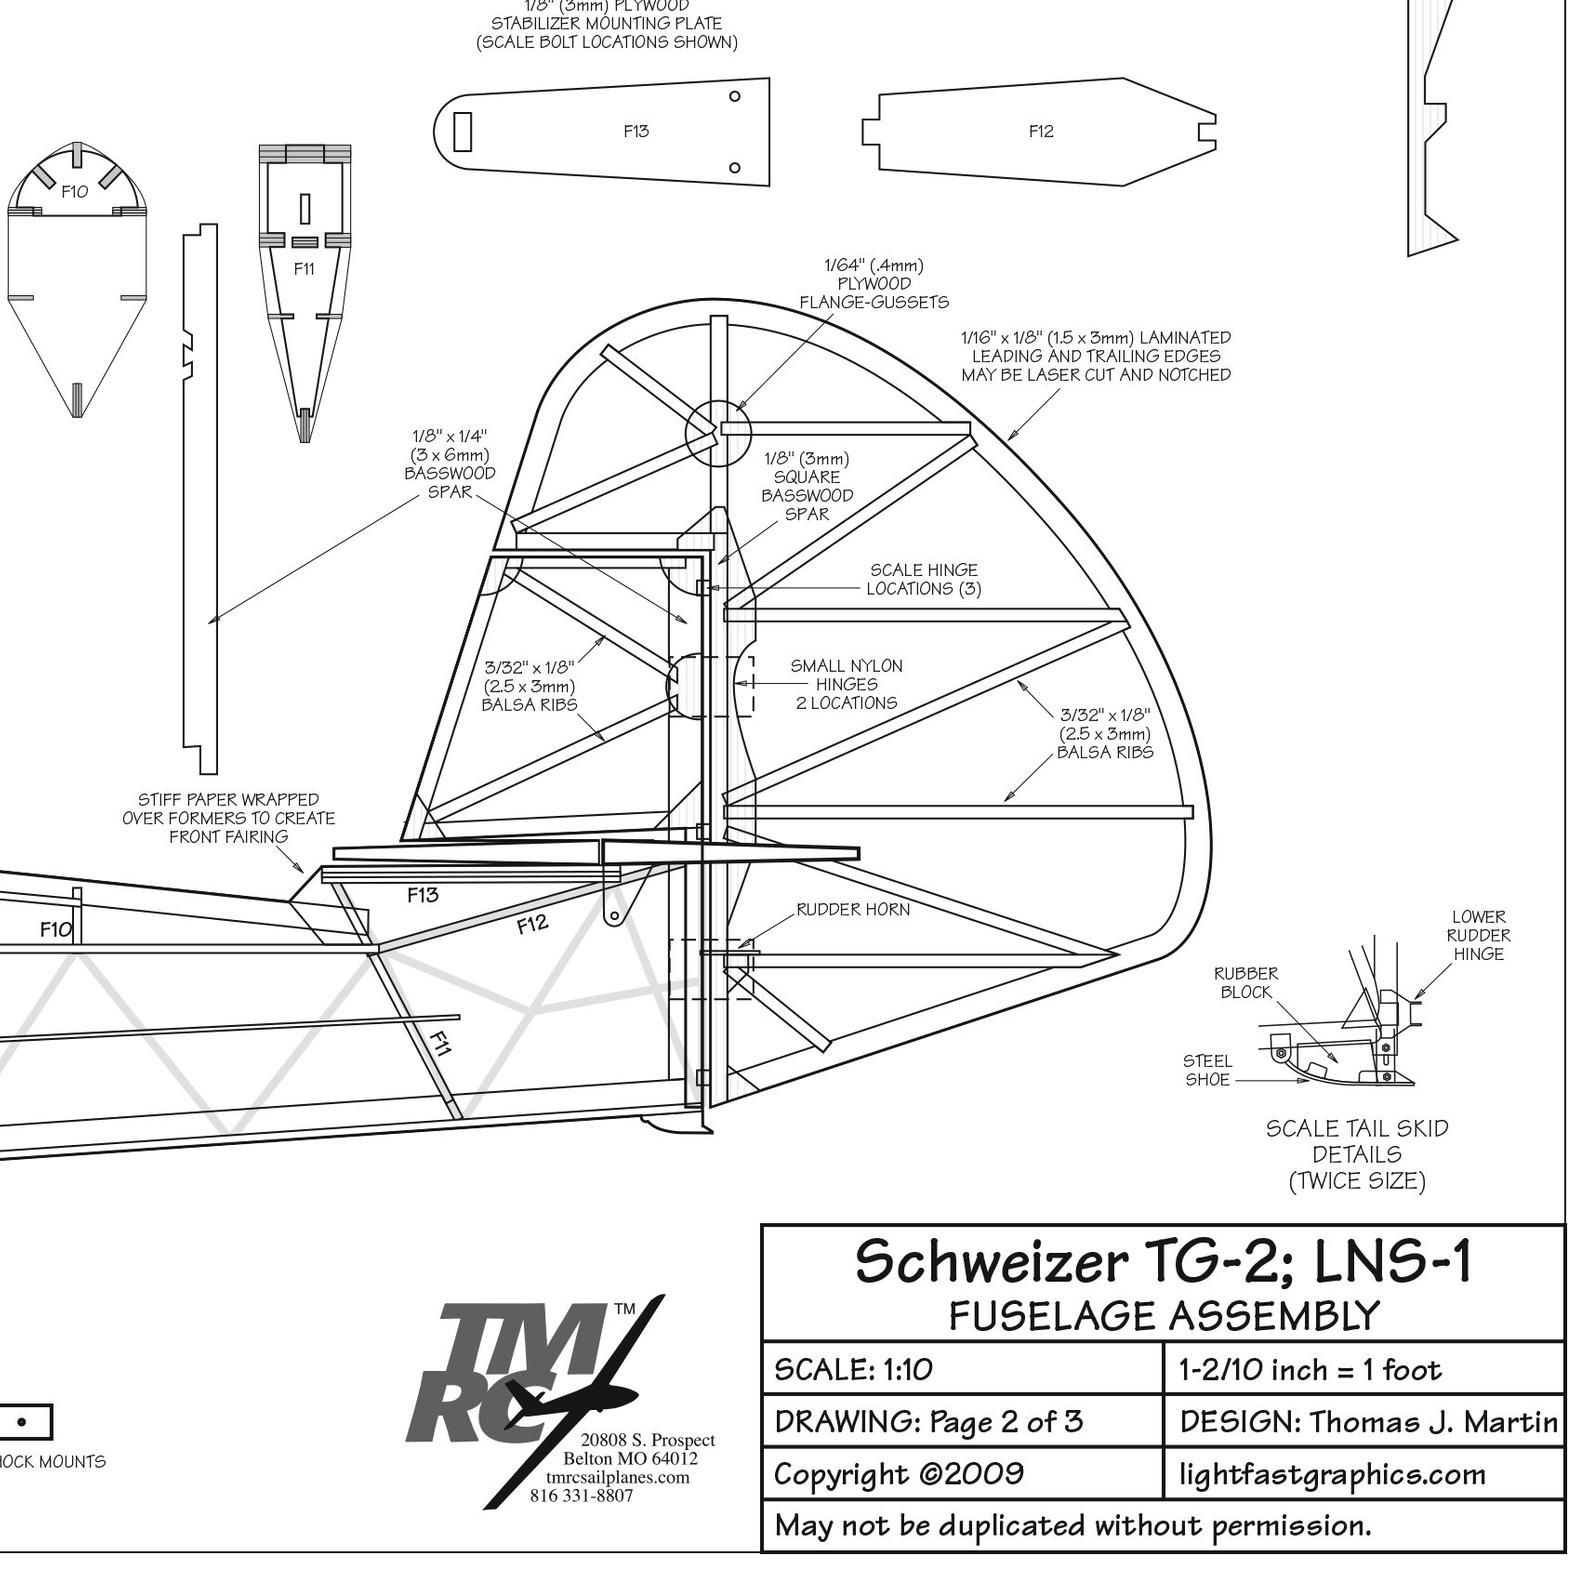 Schweizer 62 4 1 6m Tg 2 Lns 1 Schweizer Sgs 2 8 1 10 Museum Scale Balsa Sailplane Model Plans With Patterns Templates To Make Parts V 2020 G Aviaciya Modeli